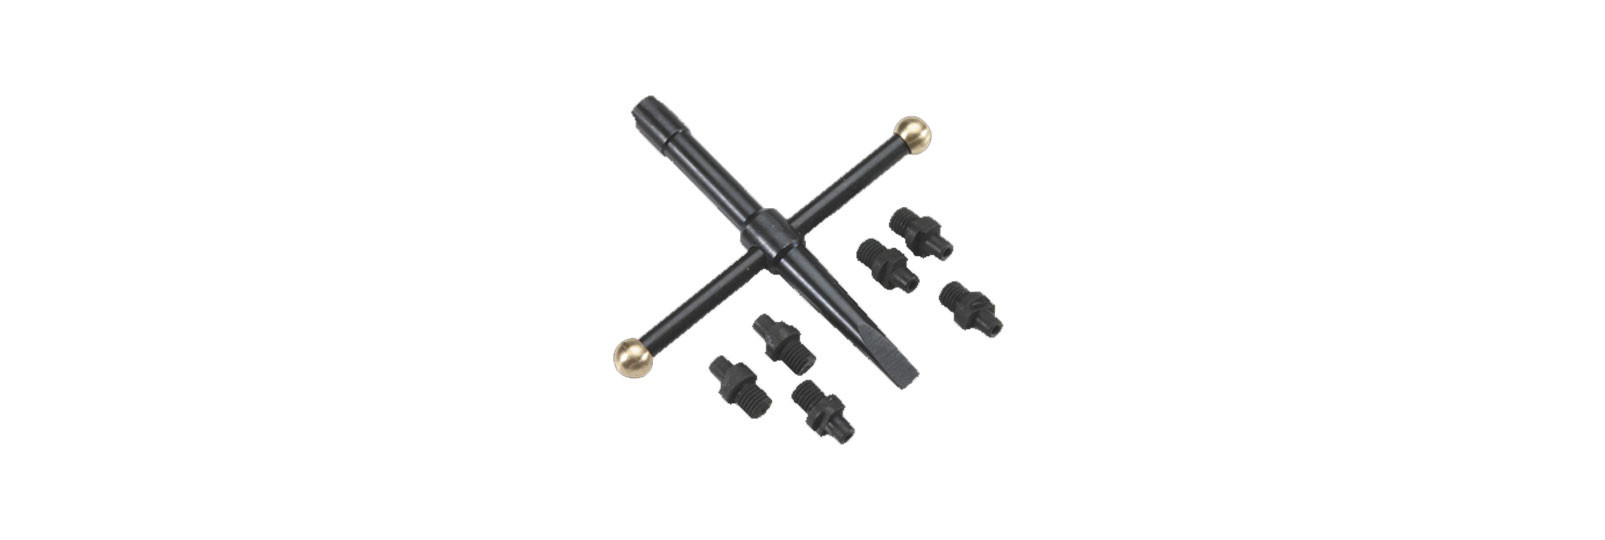 Cruciform nipple wrench set for revolver with 6...